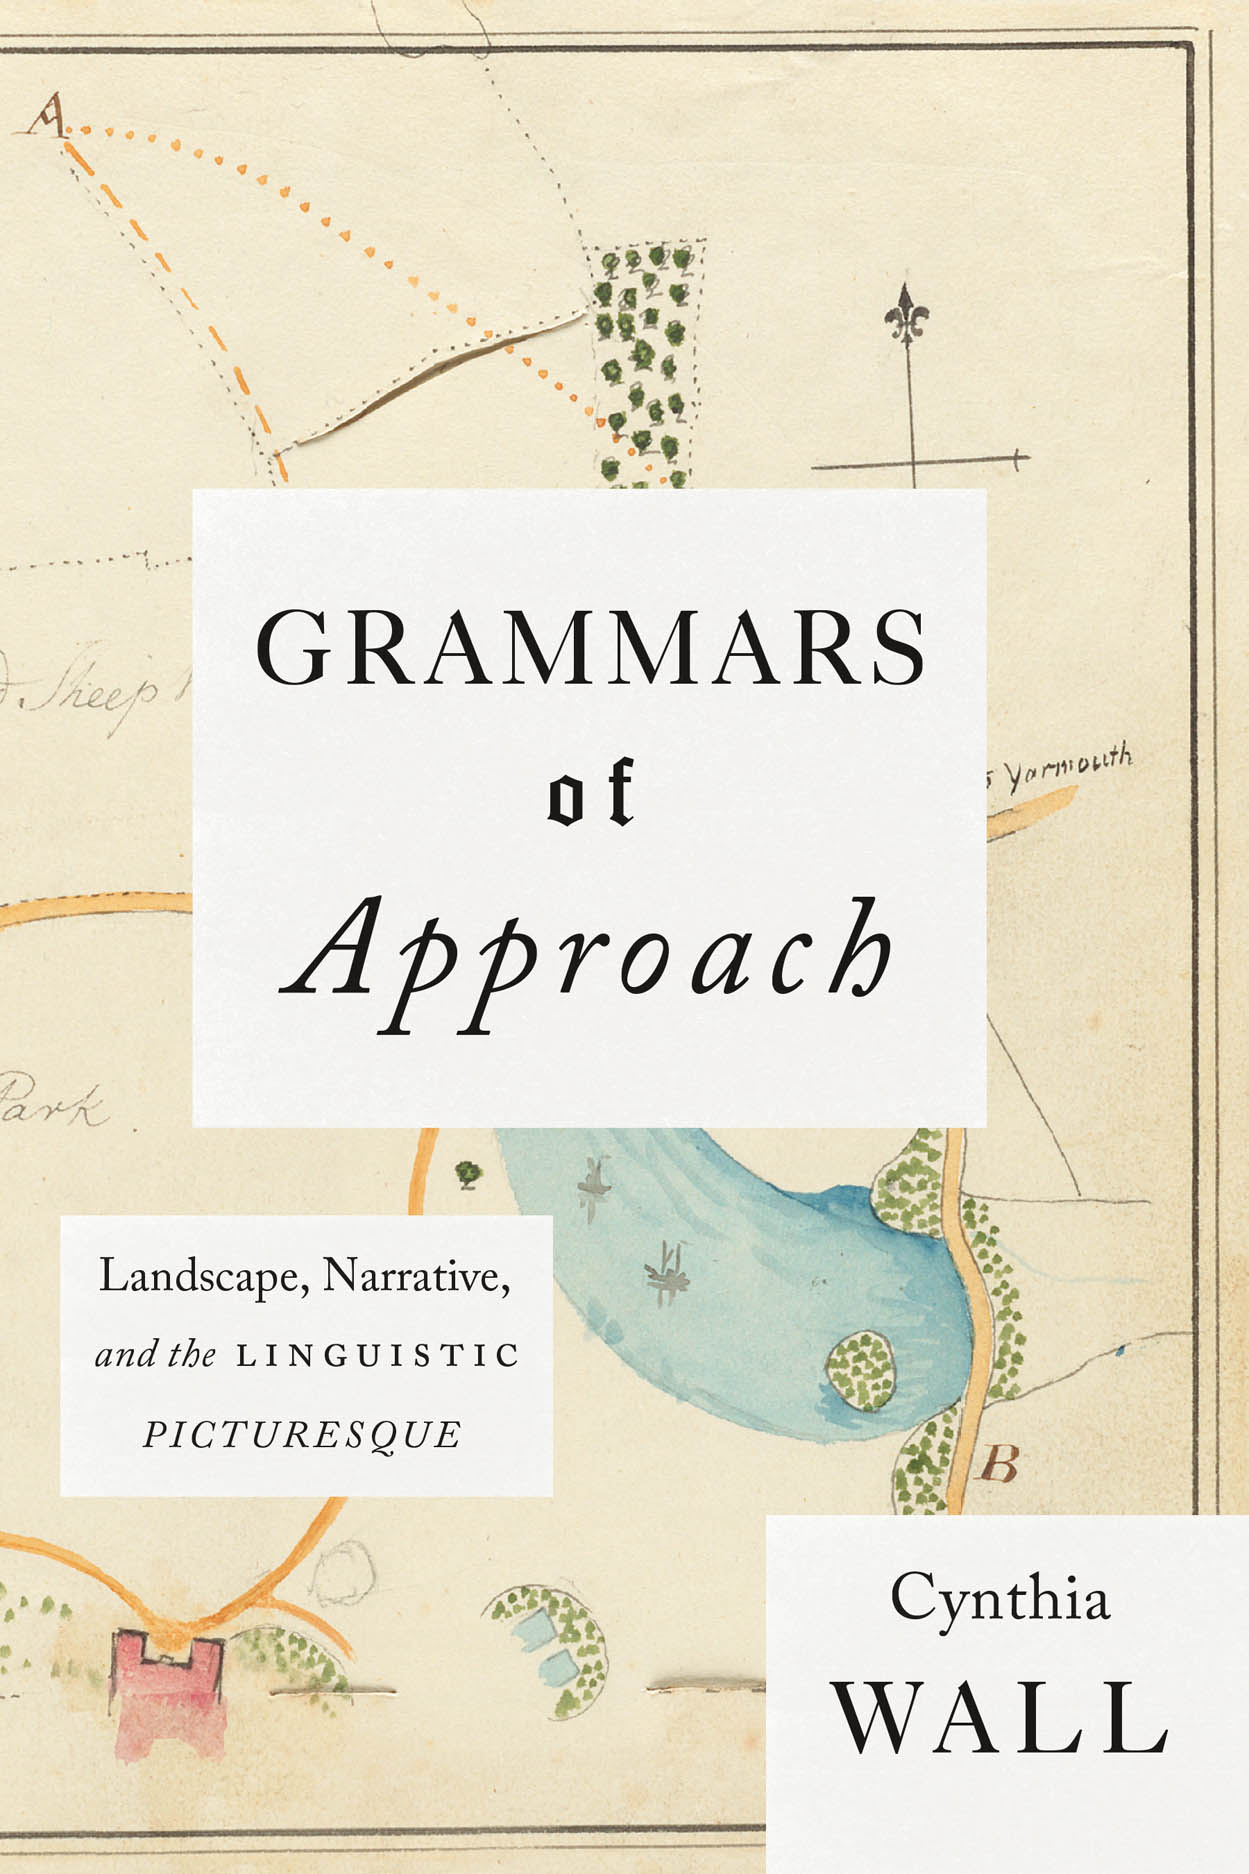 Grammars of Approach: Landscape, Narrative, and the Linguistic Picturesque